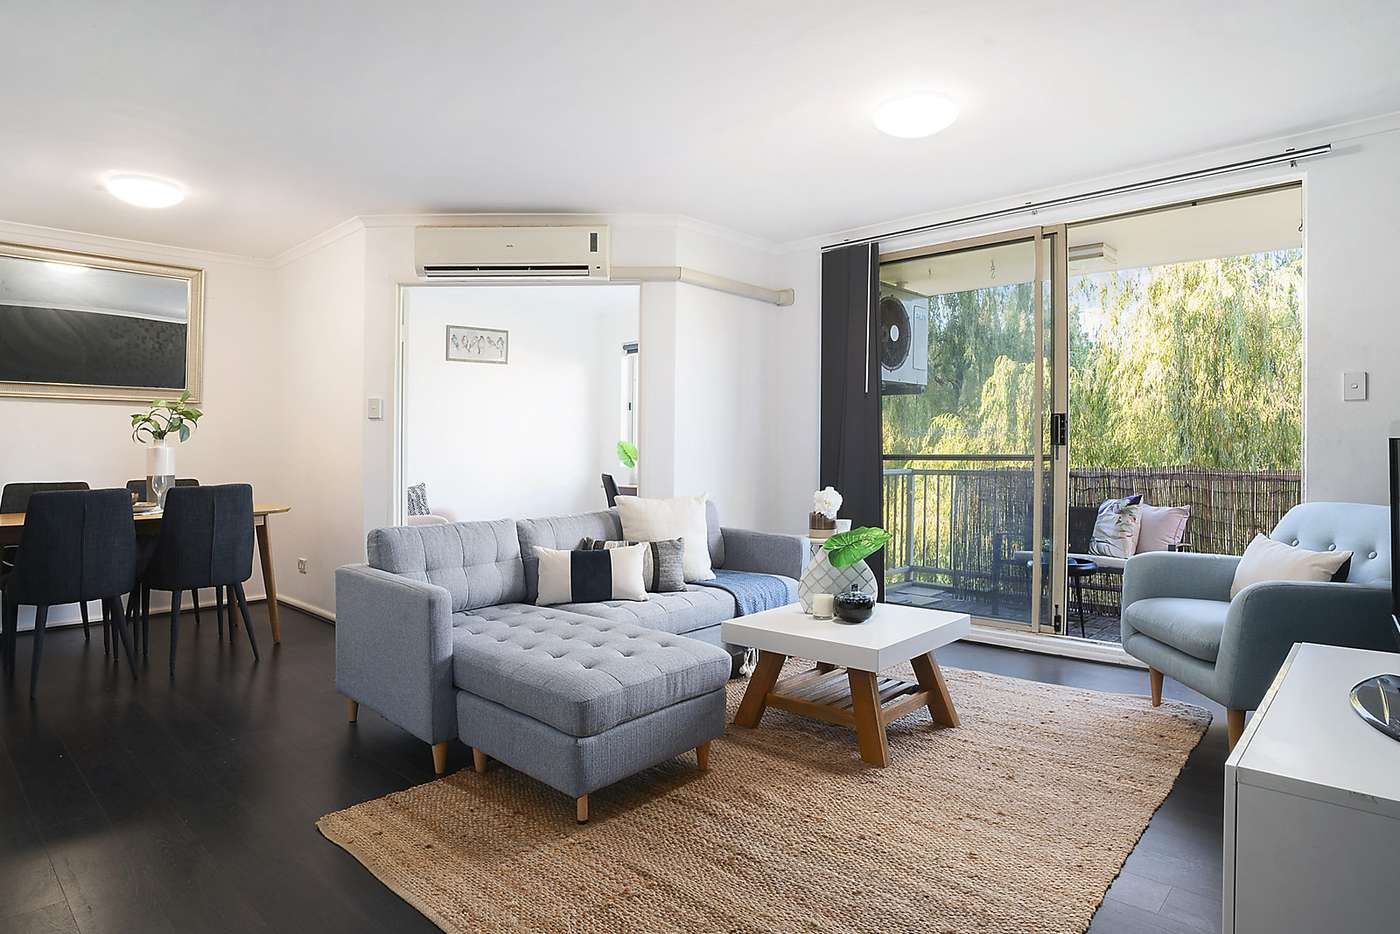 Main view of Homely apartment listing, 47/3 Ramu Close, Sylvania Waters NSW 2224